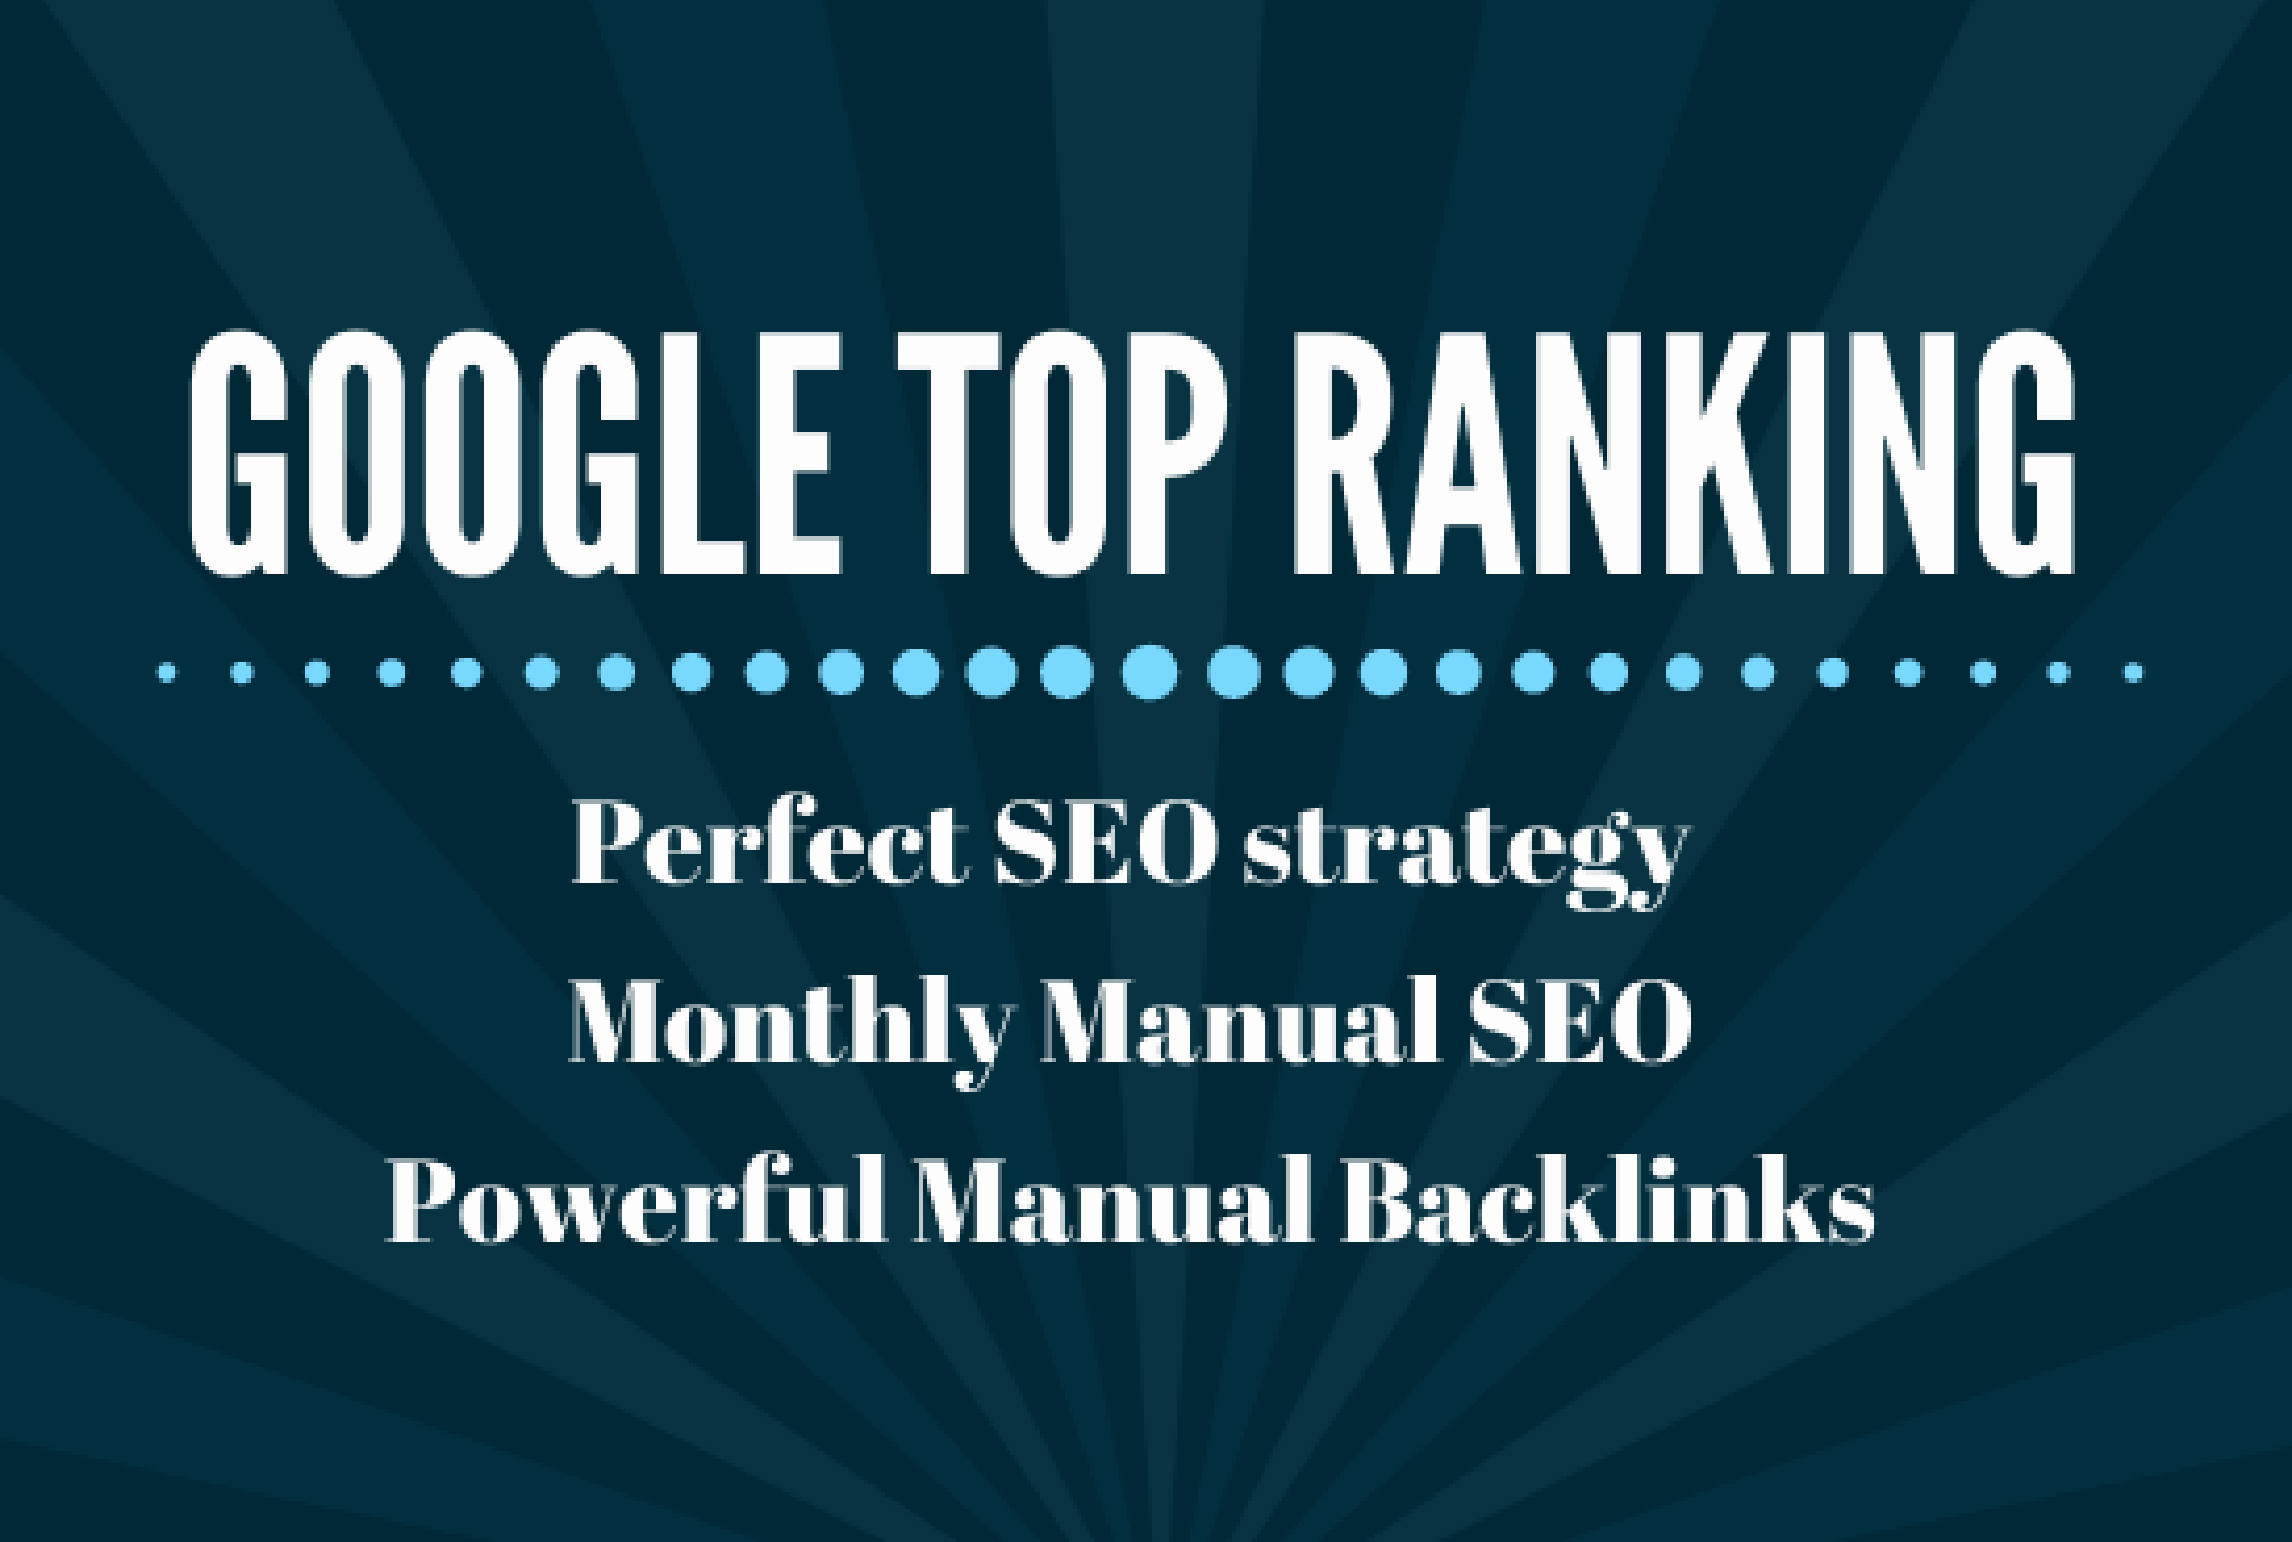 I probide 150 SEO backlinks white hat manual link building service for google top ranking